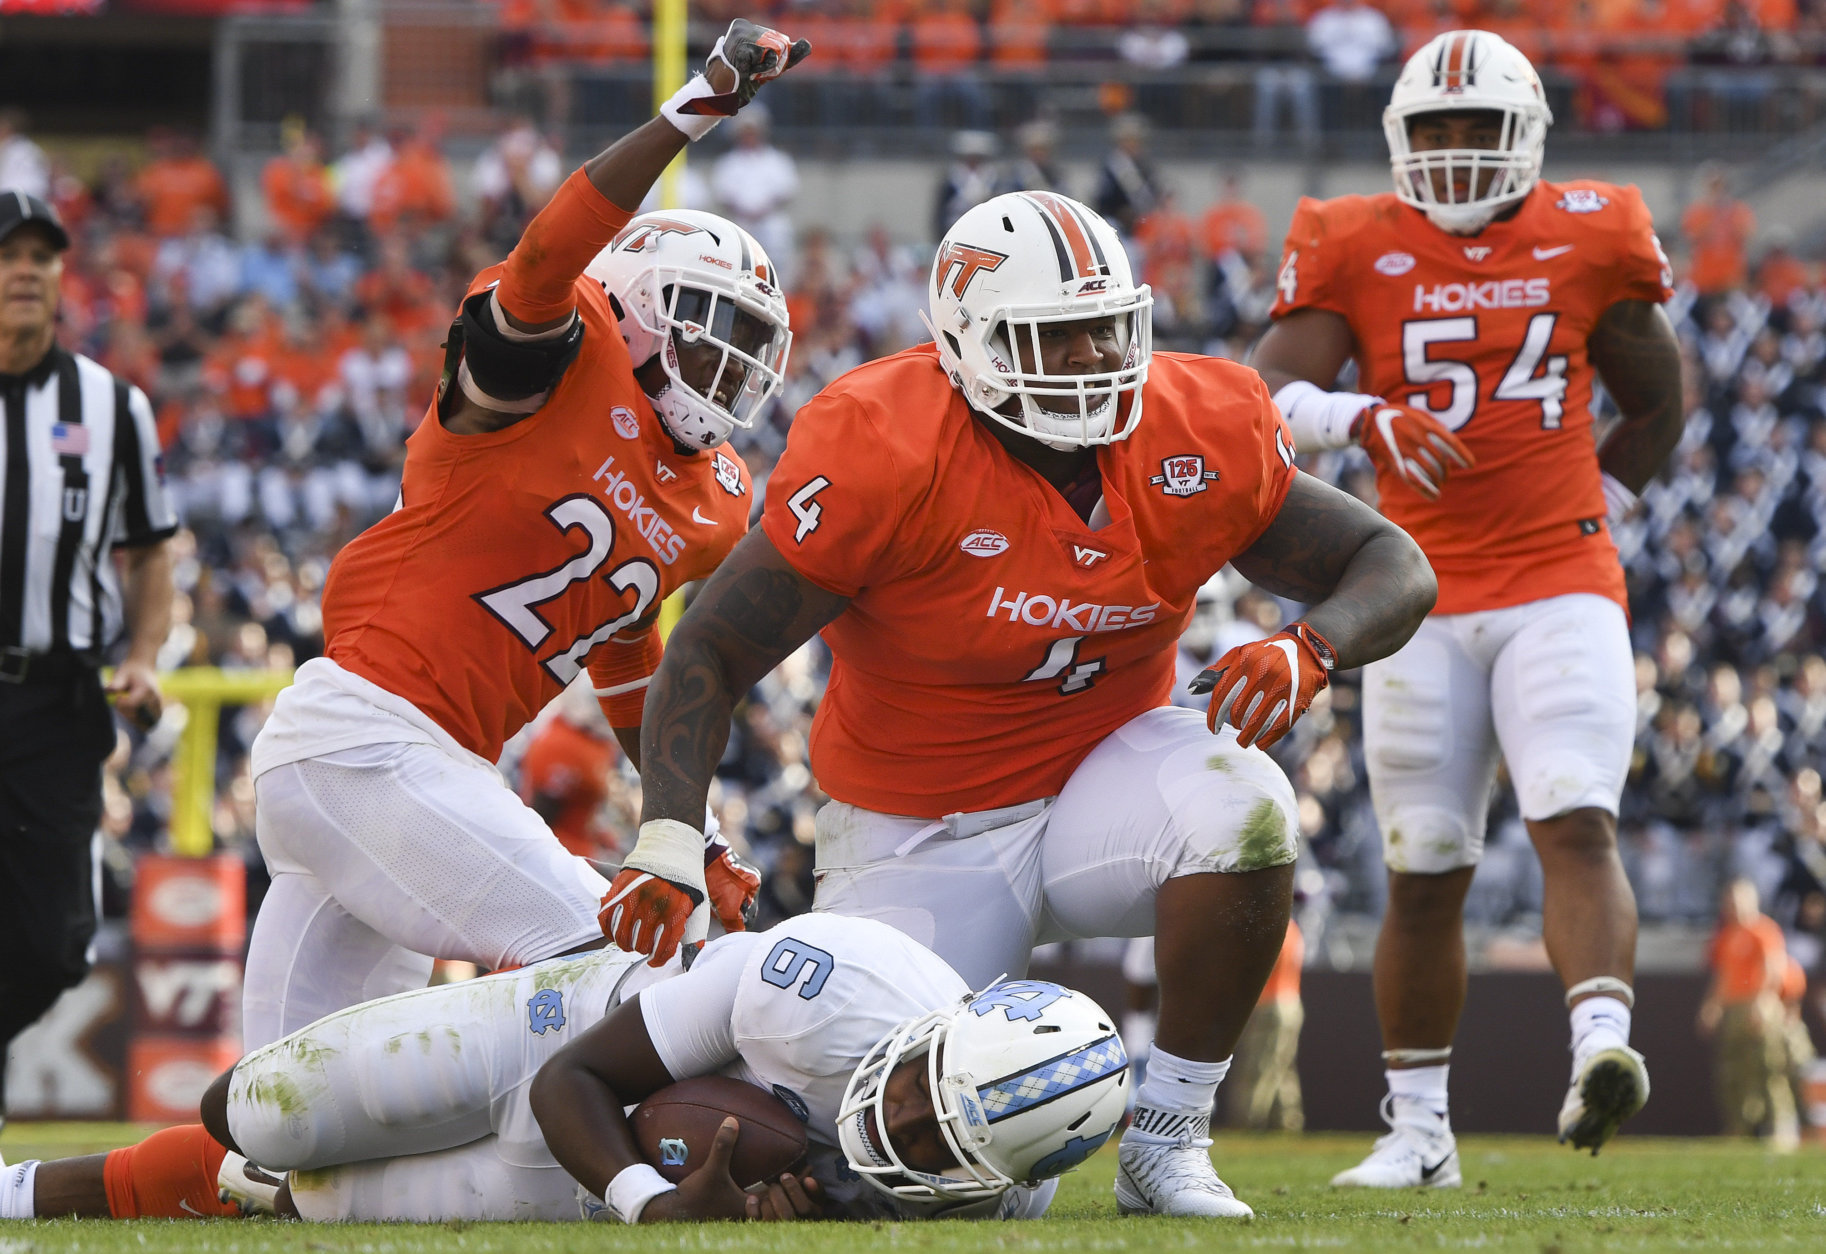 BLACKSBURG, VA - OCTOBER 21: Defensive tackle Tim Settle #4 and safety Terrell Edmunds #22 of the Virginia Tech Hokies celebrate their sack on quarterback Brandon Harris #6 of the North Carolina Tar Heels in the first half at Lane Stadium on October 21, 2017 in Blacksburg, Virginia. (Photo by Michael Shroyer/Getty Images)